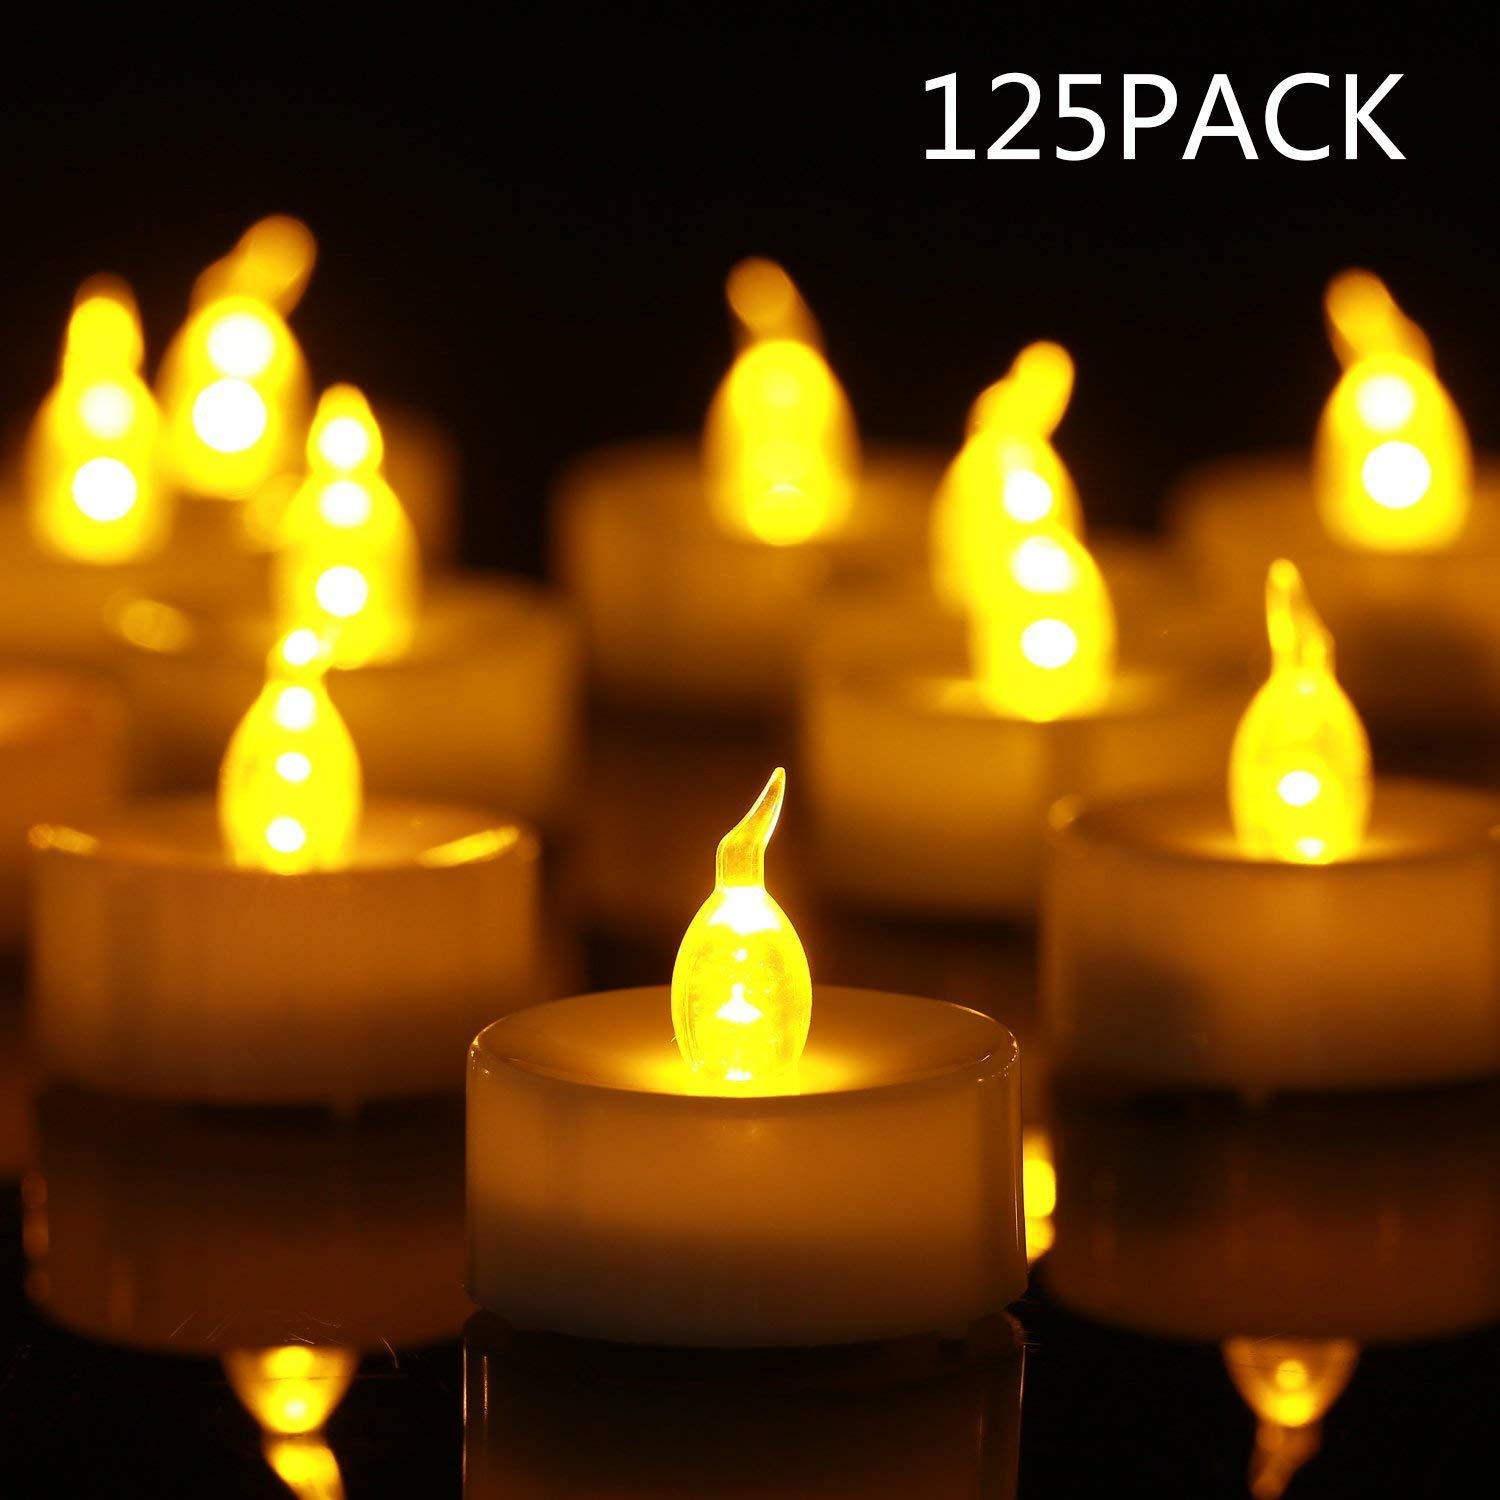 Antizer Tea Lights, 125 Pack Flameless LED Tea Lights Candles Flickering Warm Yellow 100+ Hours Battery-Powered Tealight Candle. Ideal for Party, Wedding, Birthday, Gifts and Home Decoration by Antizer